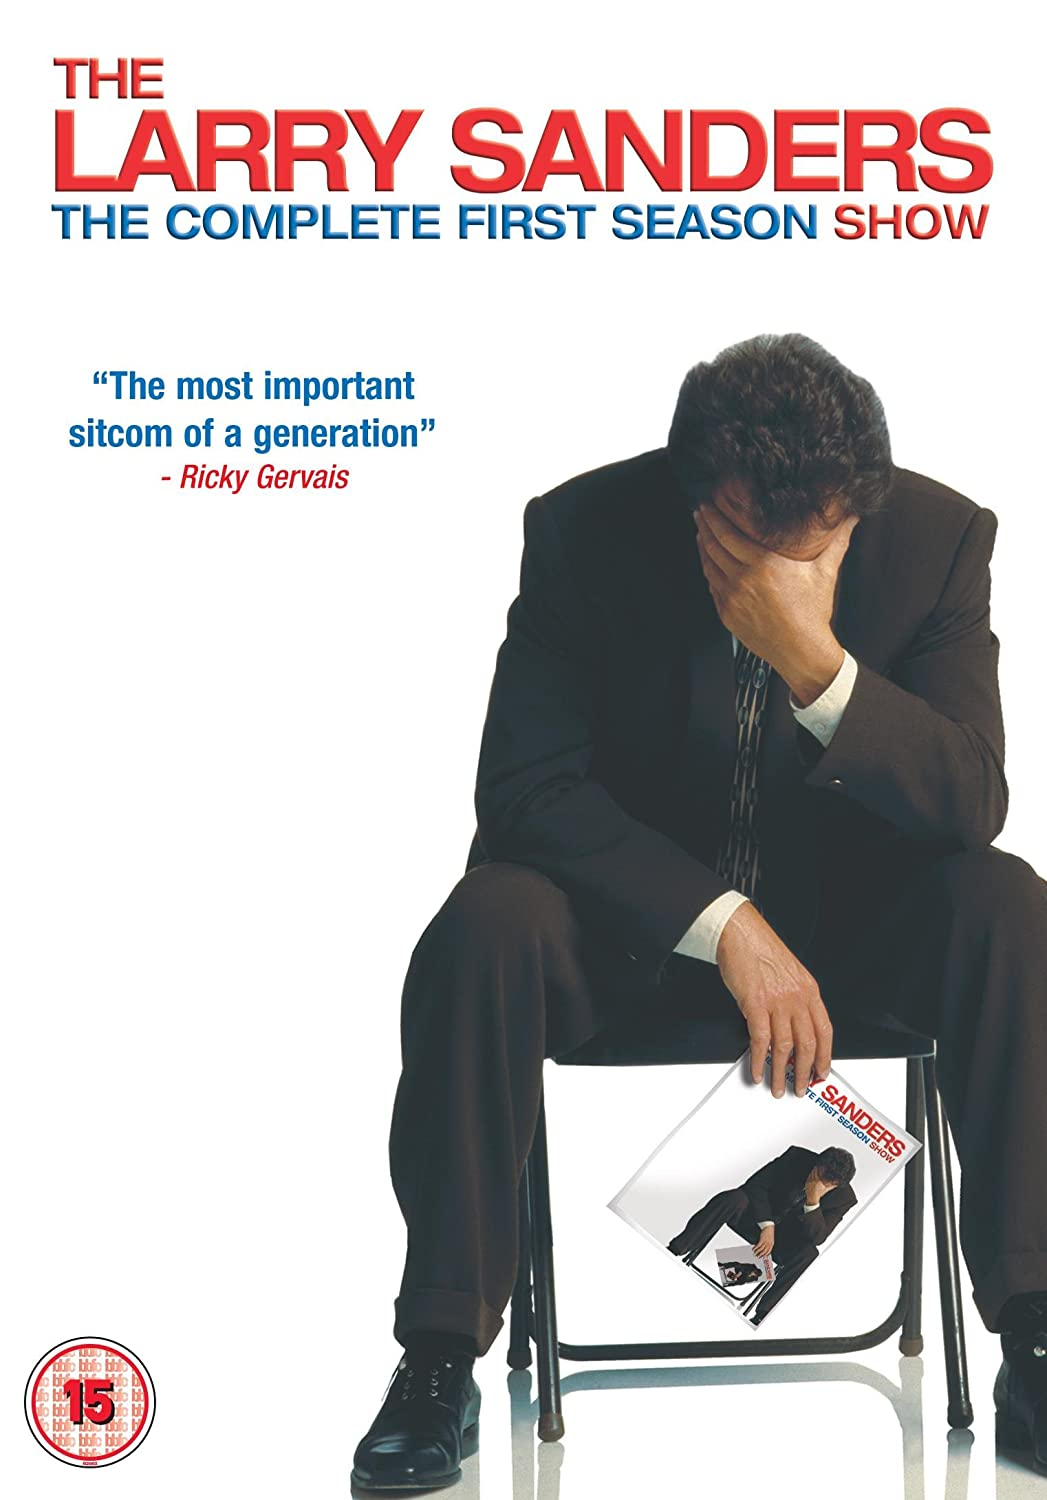 Larry Sanders Show Dvd The Larry Sanders Show The